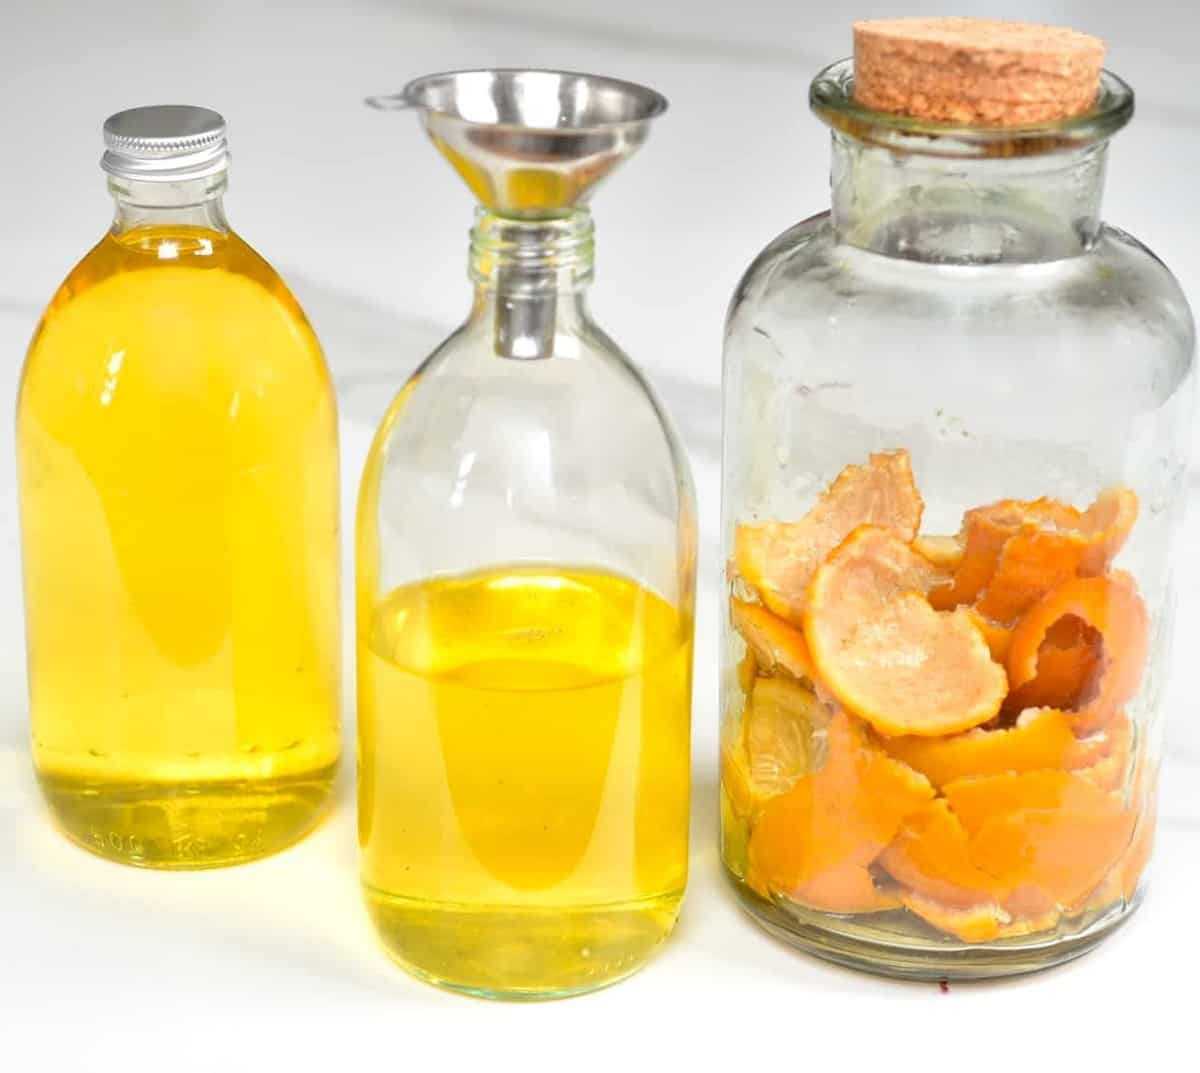 Three jars with homemade citrus cleaner